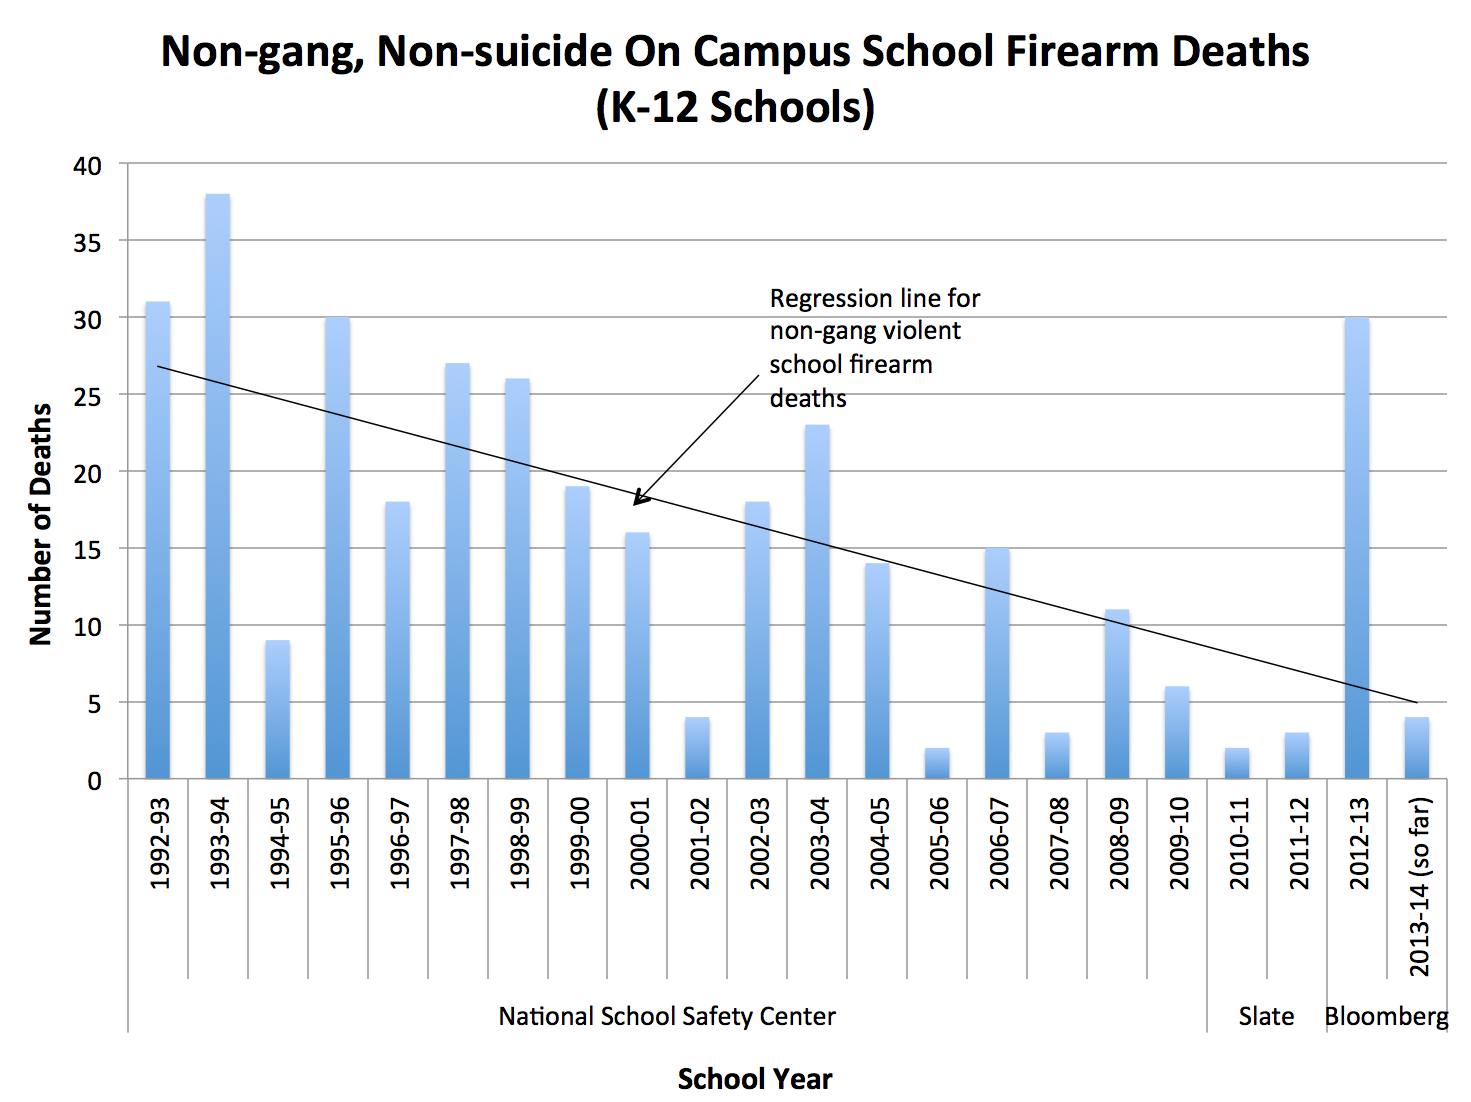 preventing mass school shootings essay School shooting incidents may follow extreme versions of etiological pathways seen for less extreme youth violence, and youthful school shooters appear more similar than different to adult perpetrators of mass shootings.